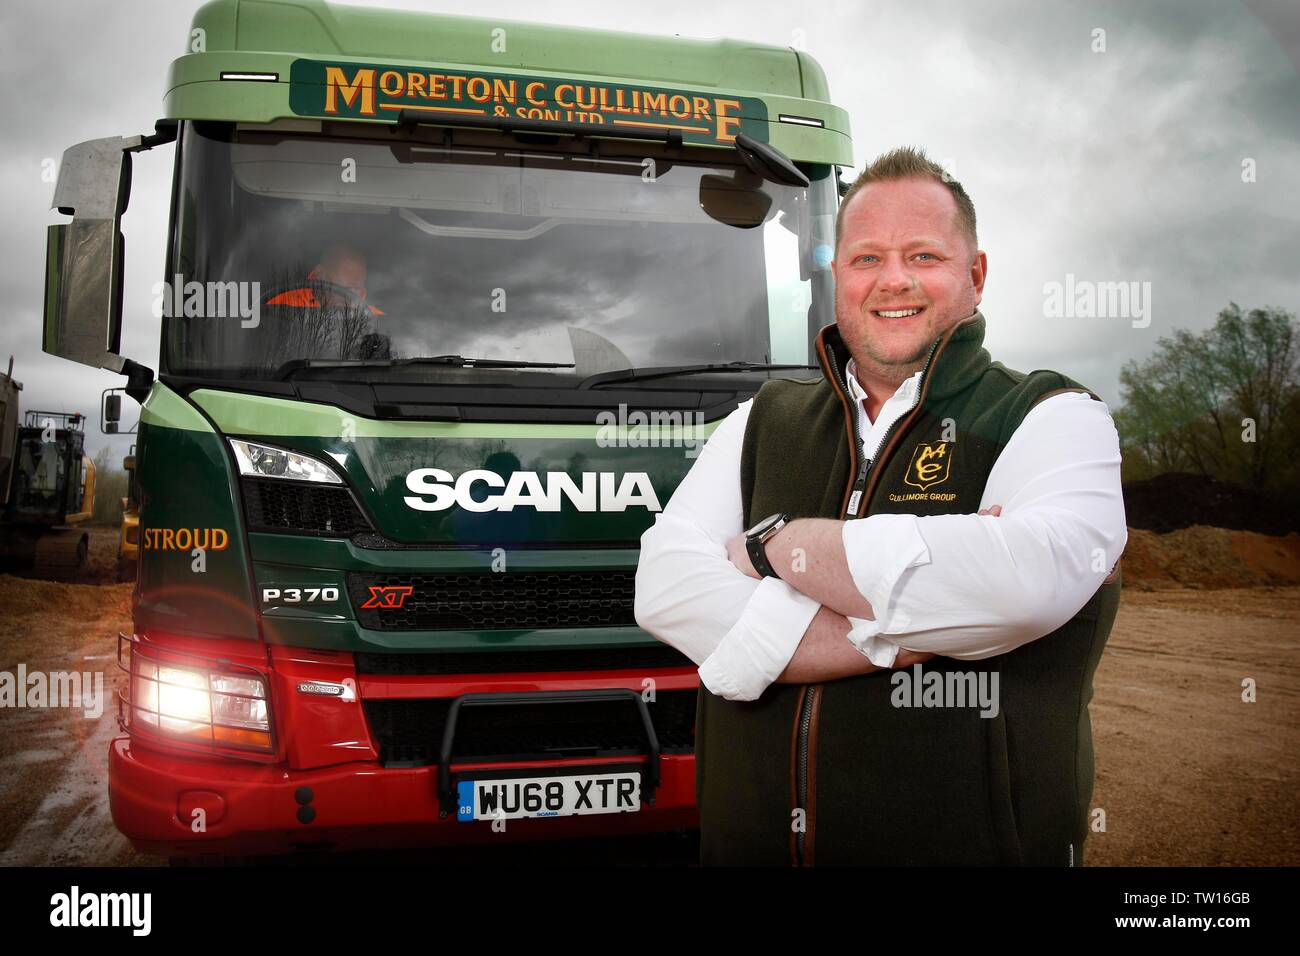 Moreton F. Cullimore, managing director of family business The Cullimore Group, best known for Moreton C. Cullimore & Sons Ltd aggregate and trucking. - Stock Image